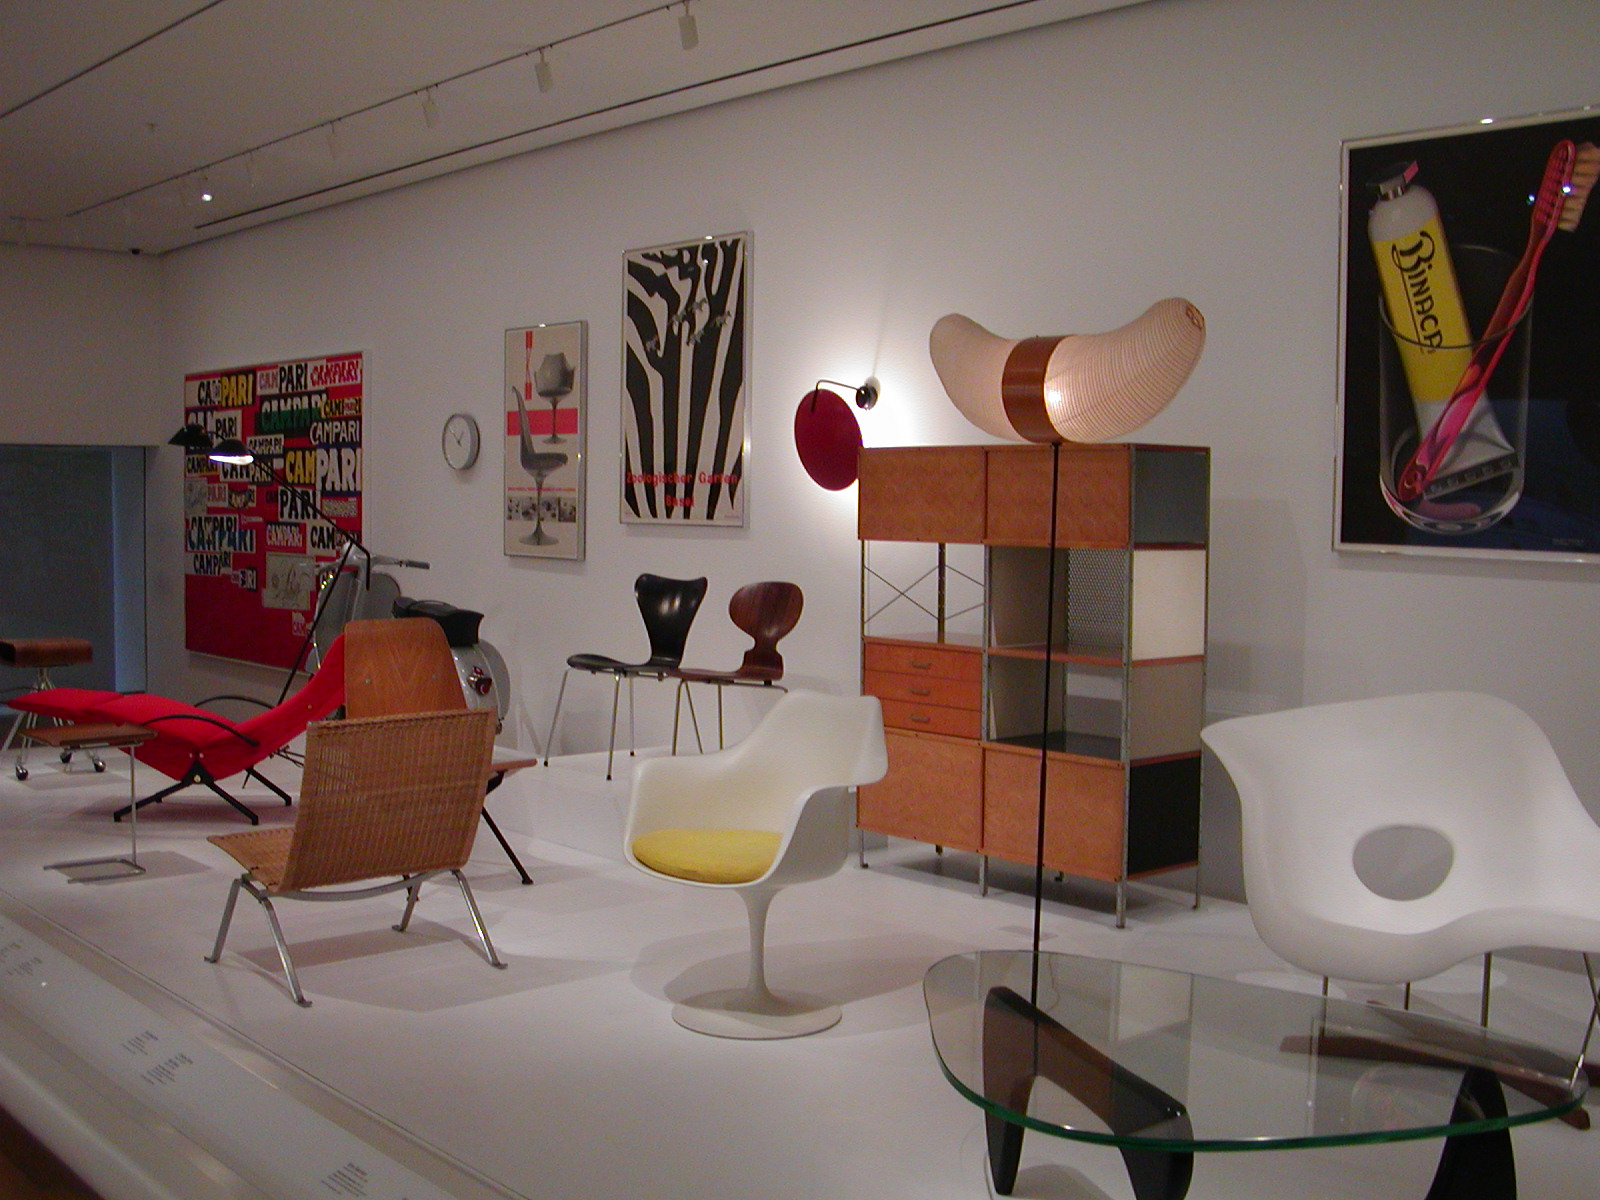 File:MOMA chairs 2.jpg - Wikimedia Commons